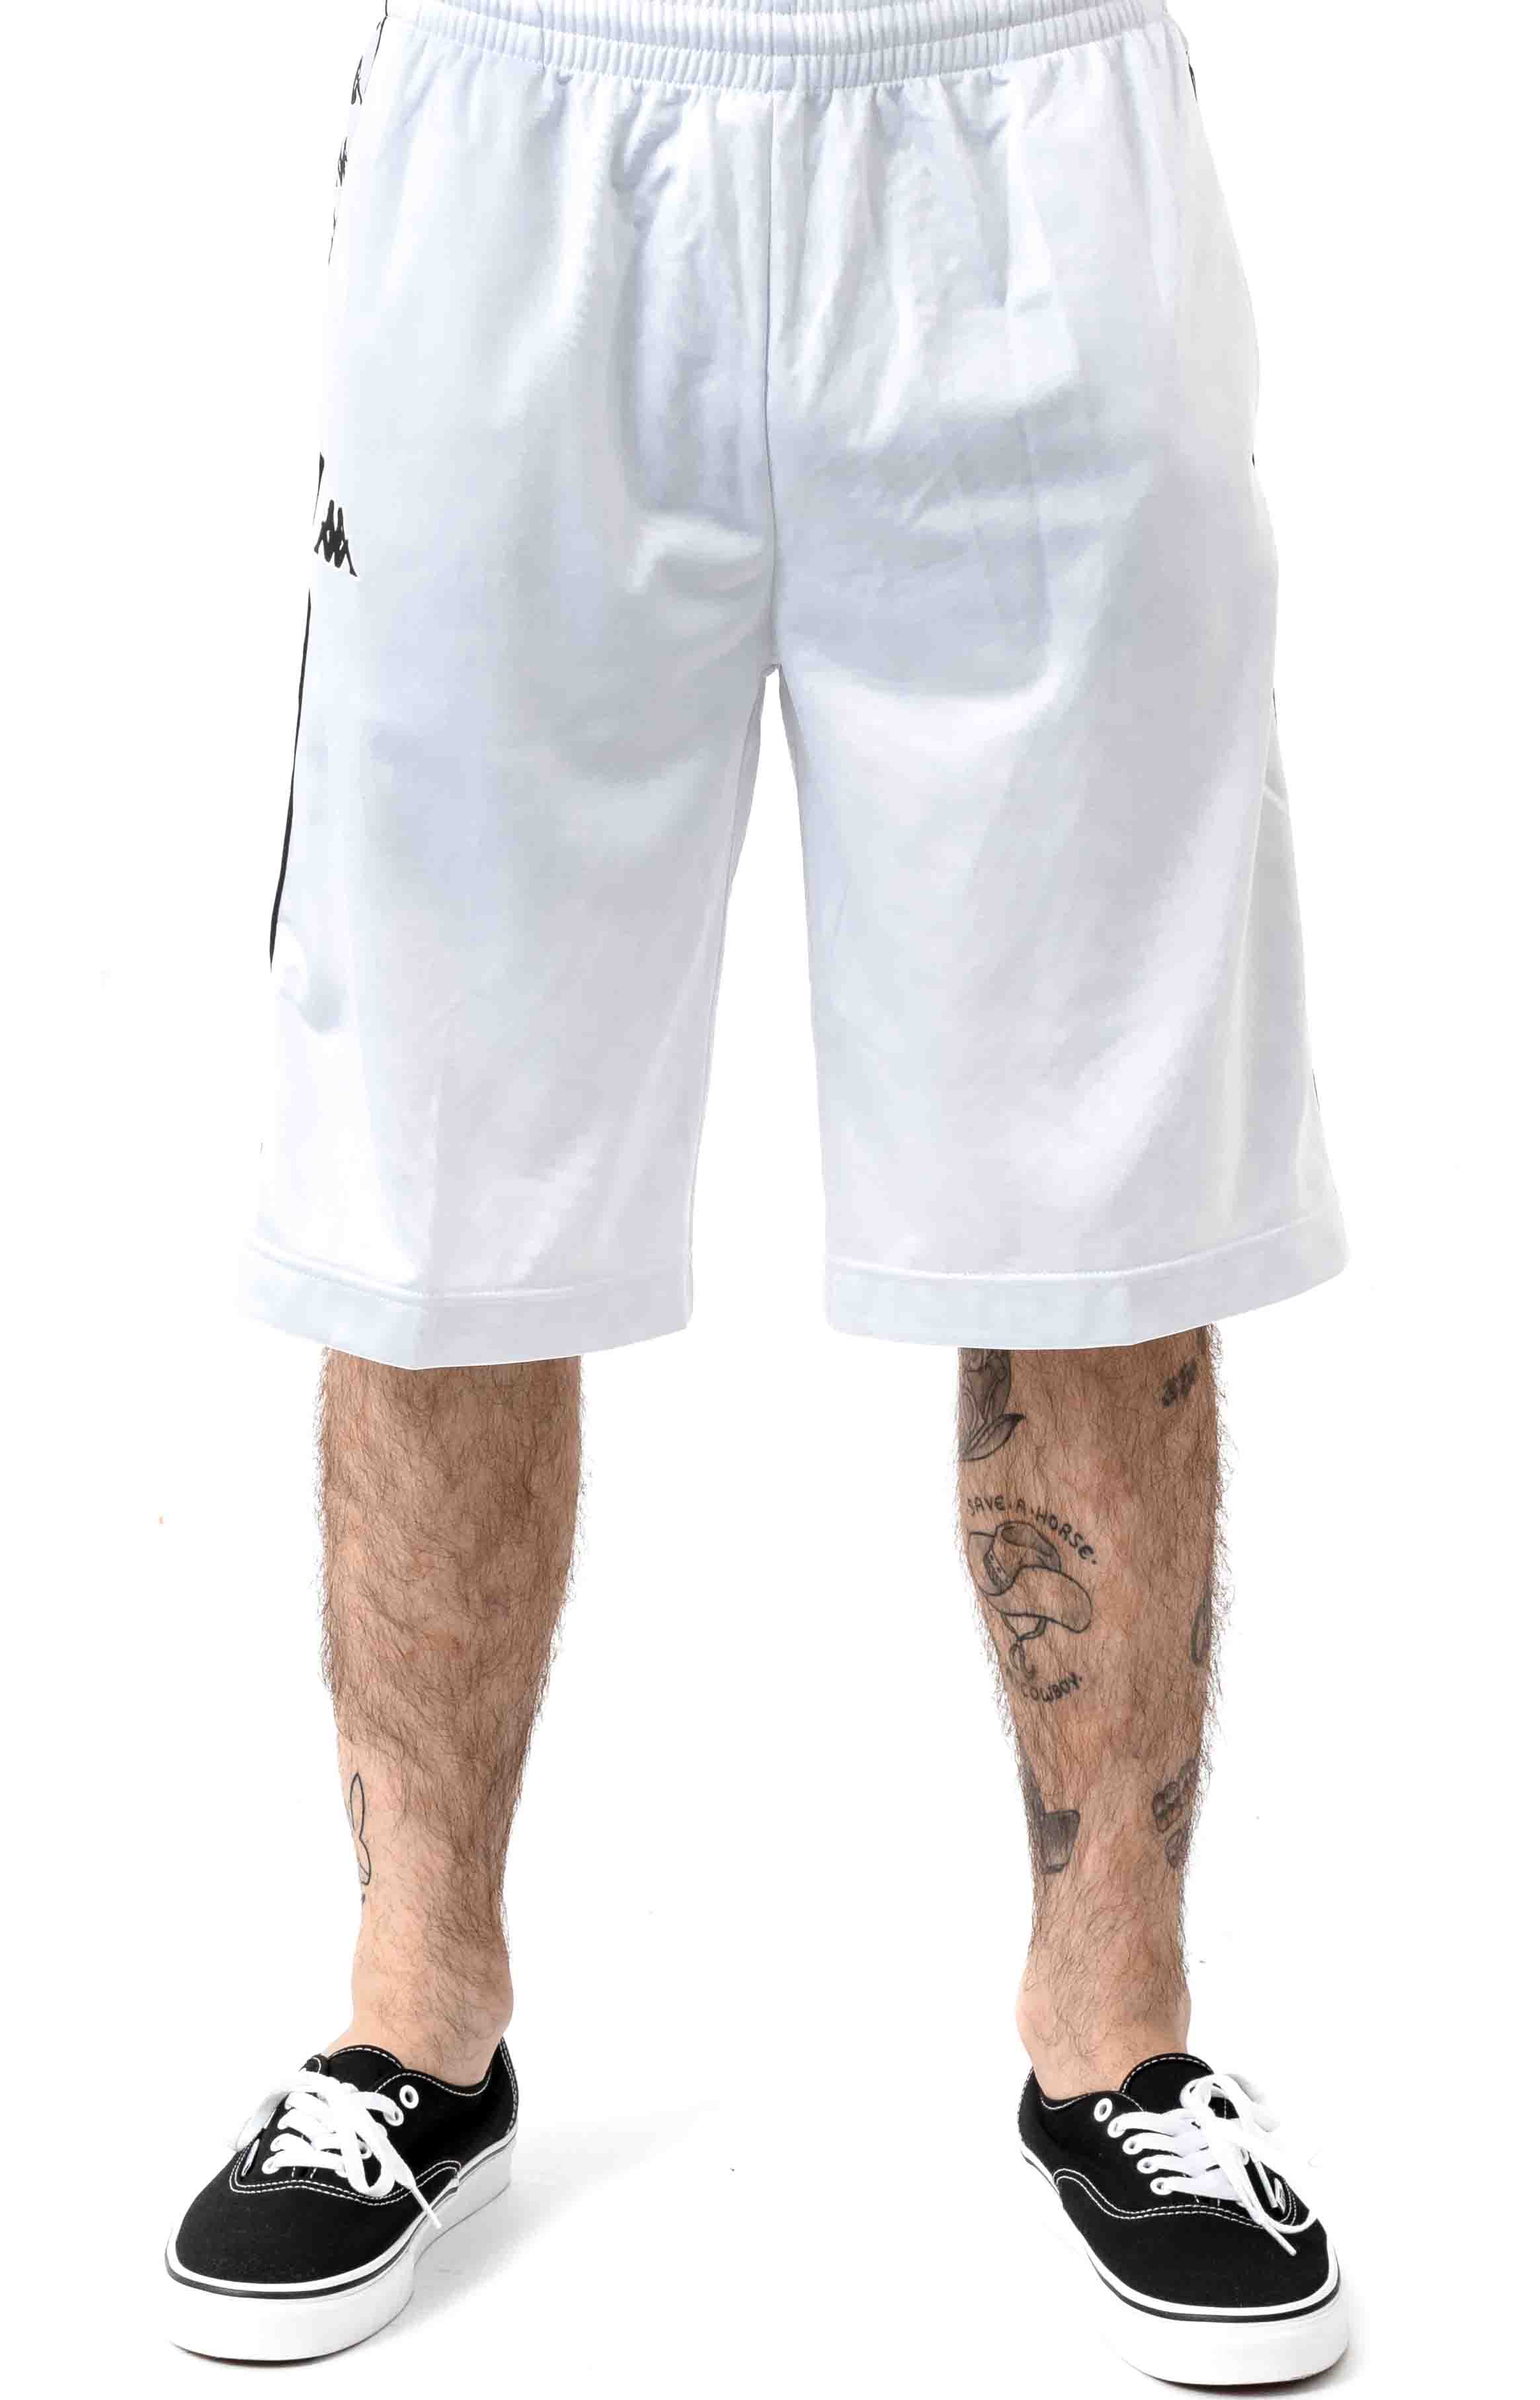 222 Banda Treadwellz Shorts - White/Black 2